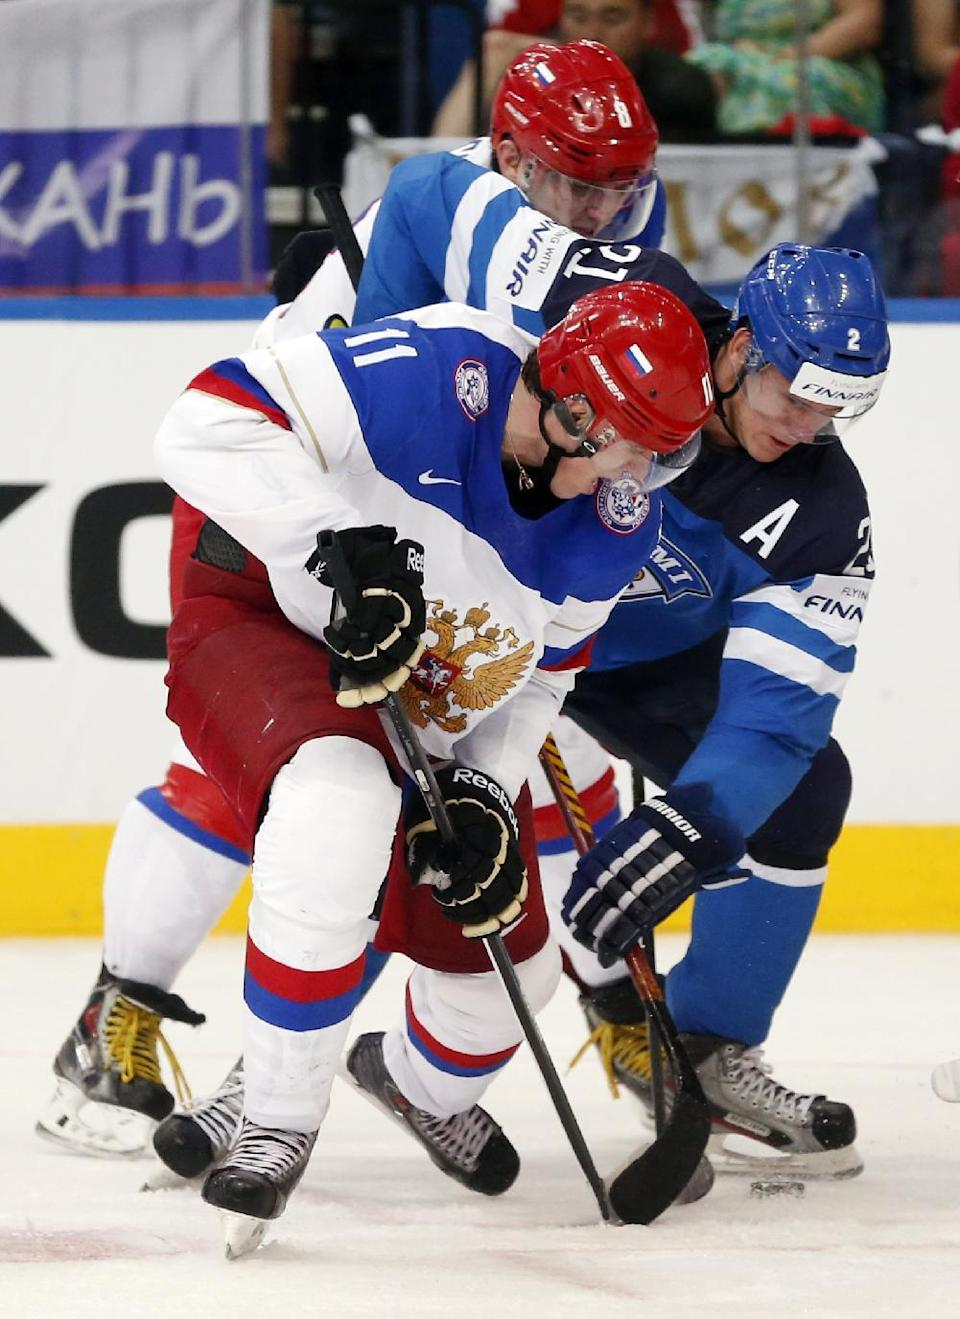 Russia forward Evgeni Malkin, left, battles for the puck against Finland forward Jori Lehtera during the gold medal match between Russia and Finland at the Ice Hockey World Championship in Minsk, Belarus, Sunday, May 25, 2014. (AP Photo/Darko Bandic)